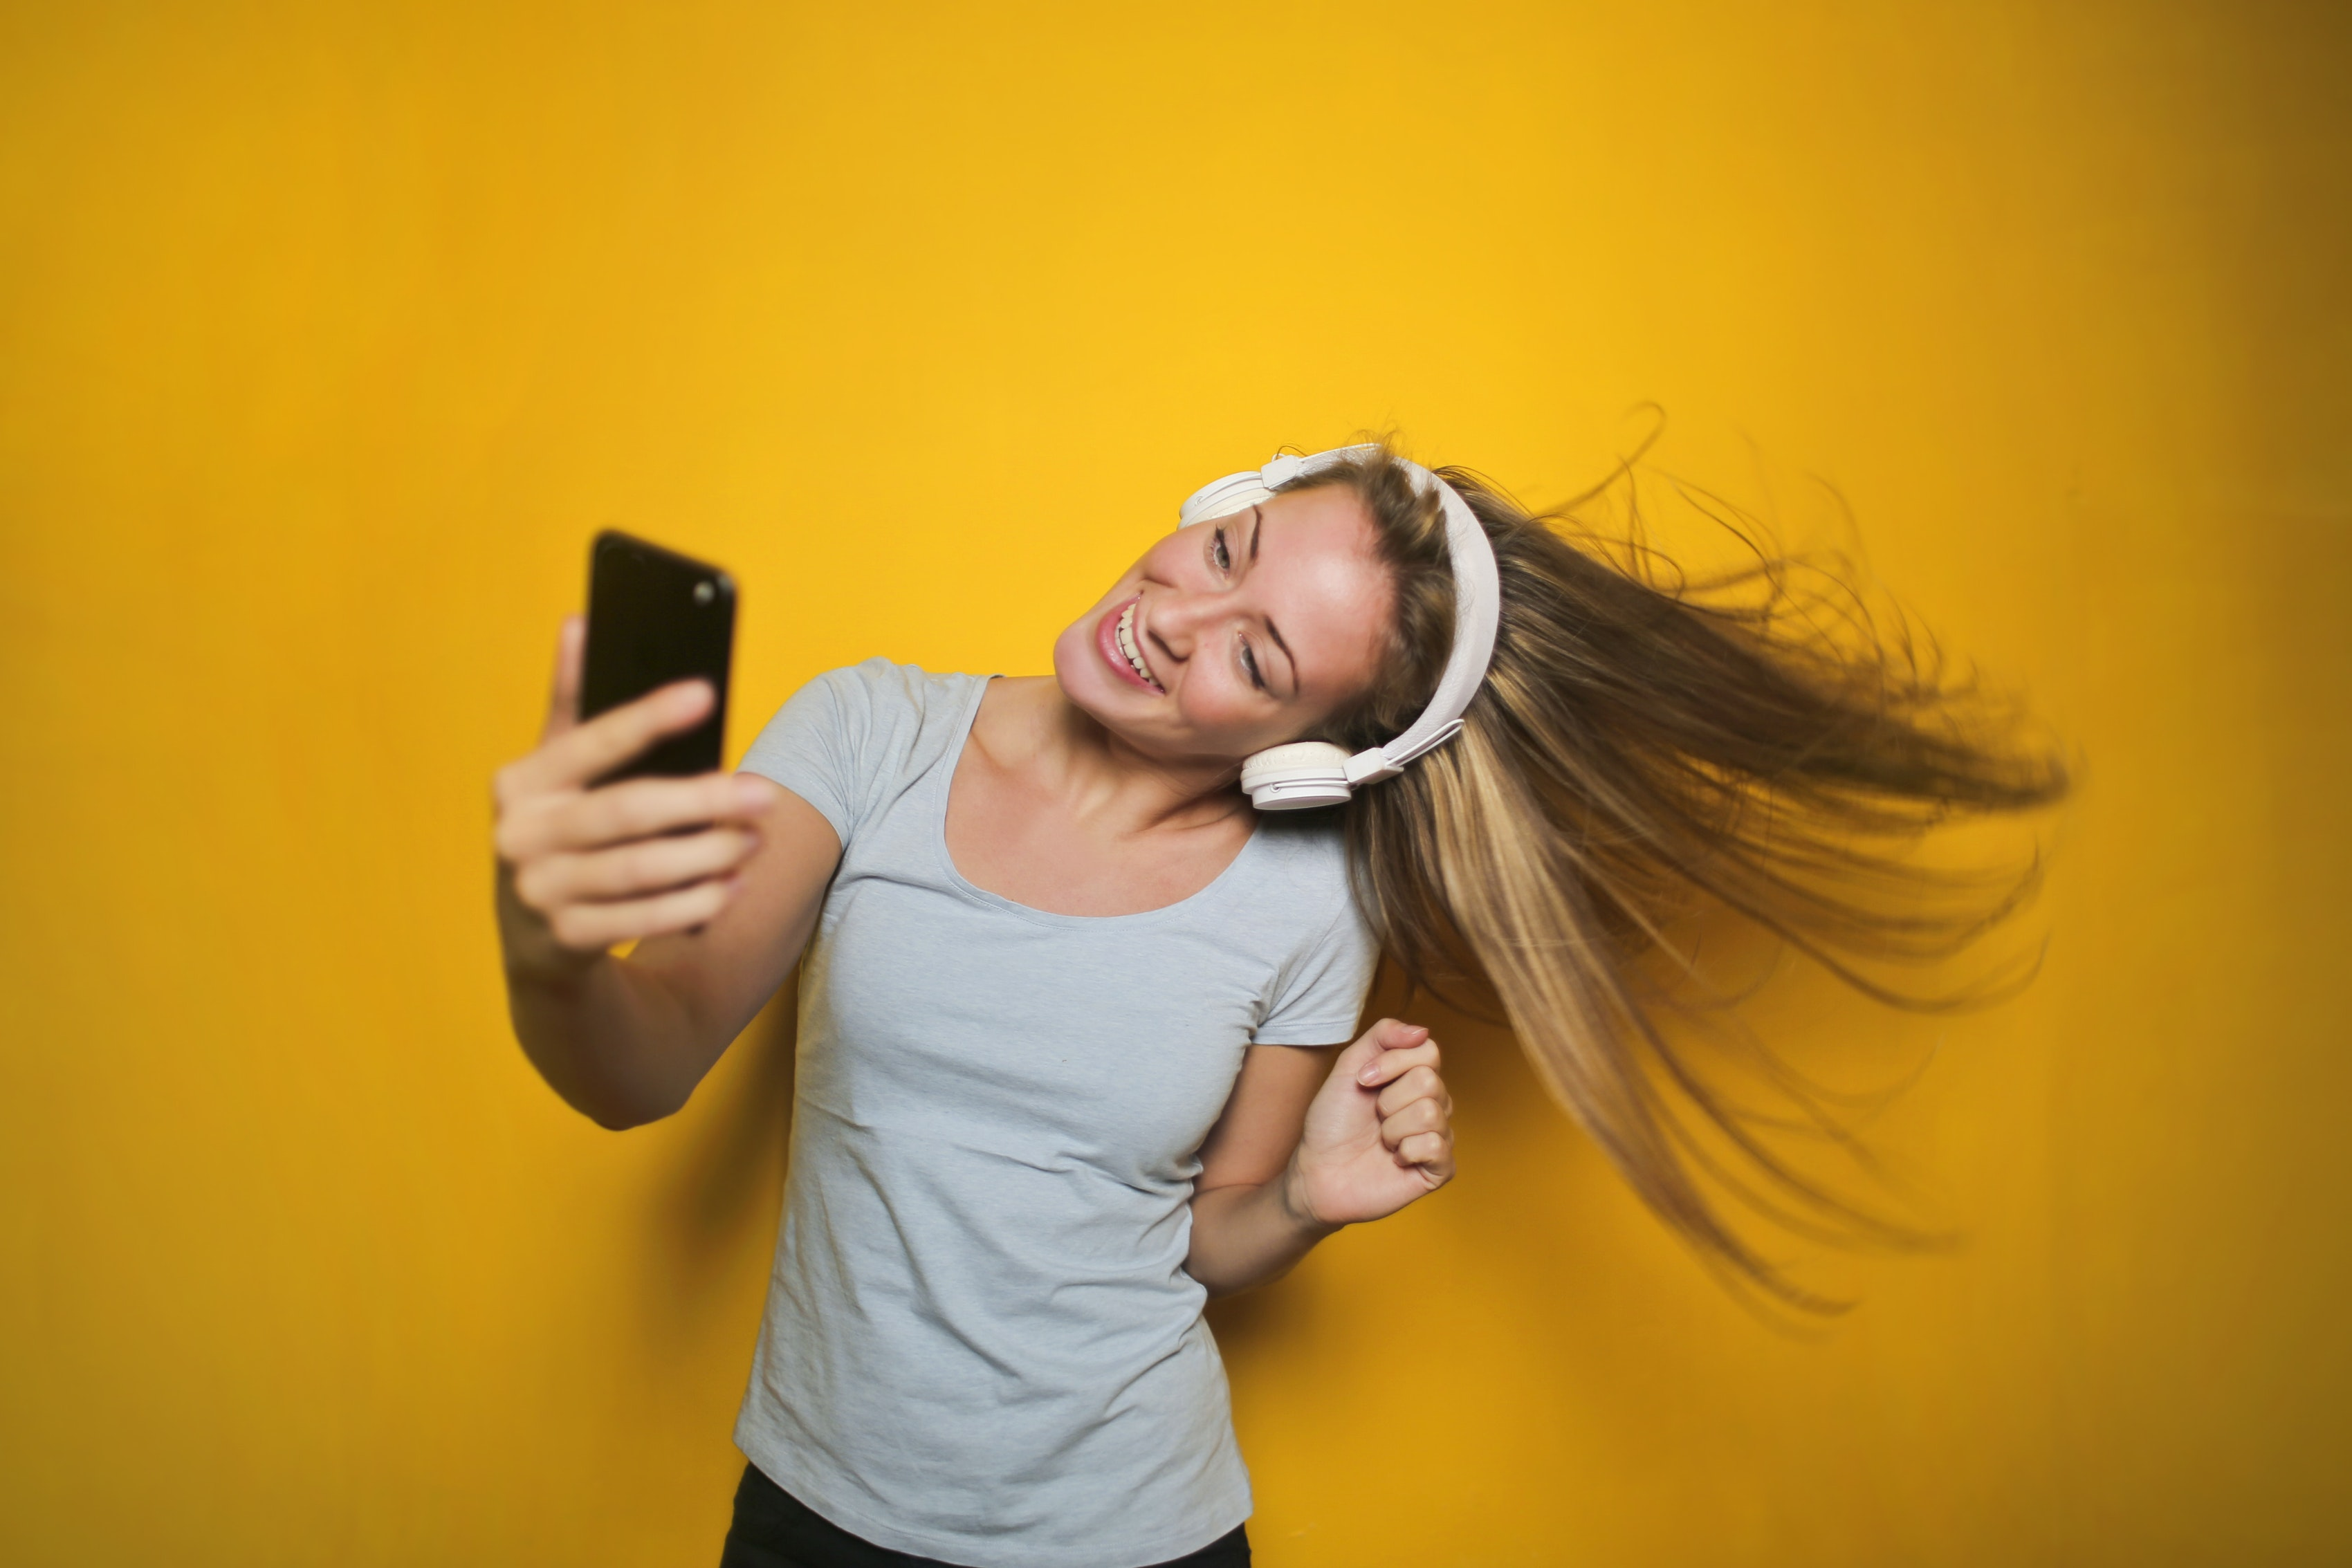 Photography of a Woman Listening to Music, Music, Person, Mobile phone, Mobile, HQ Photo